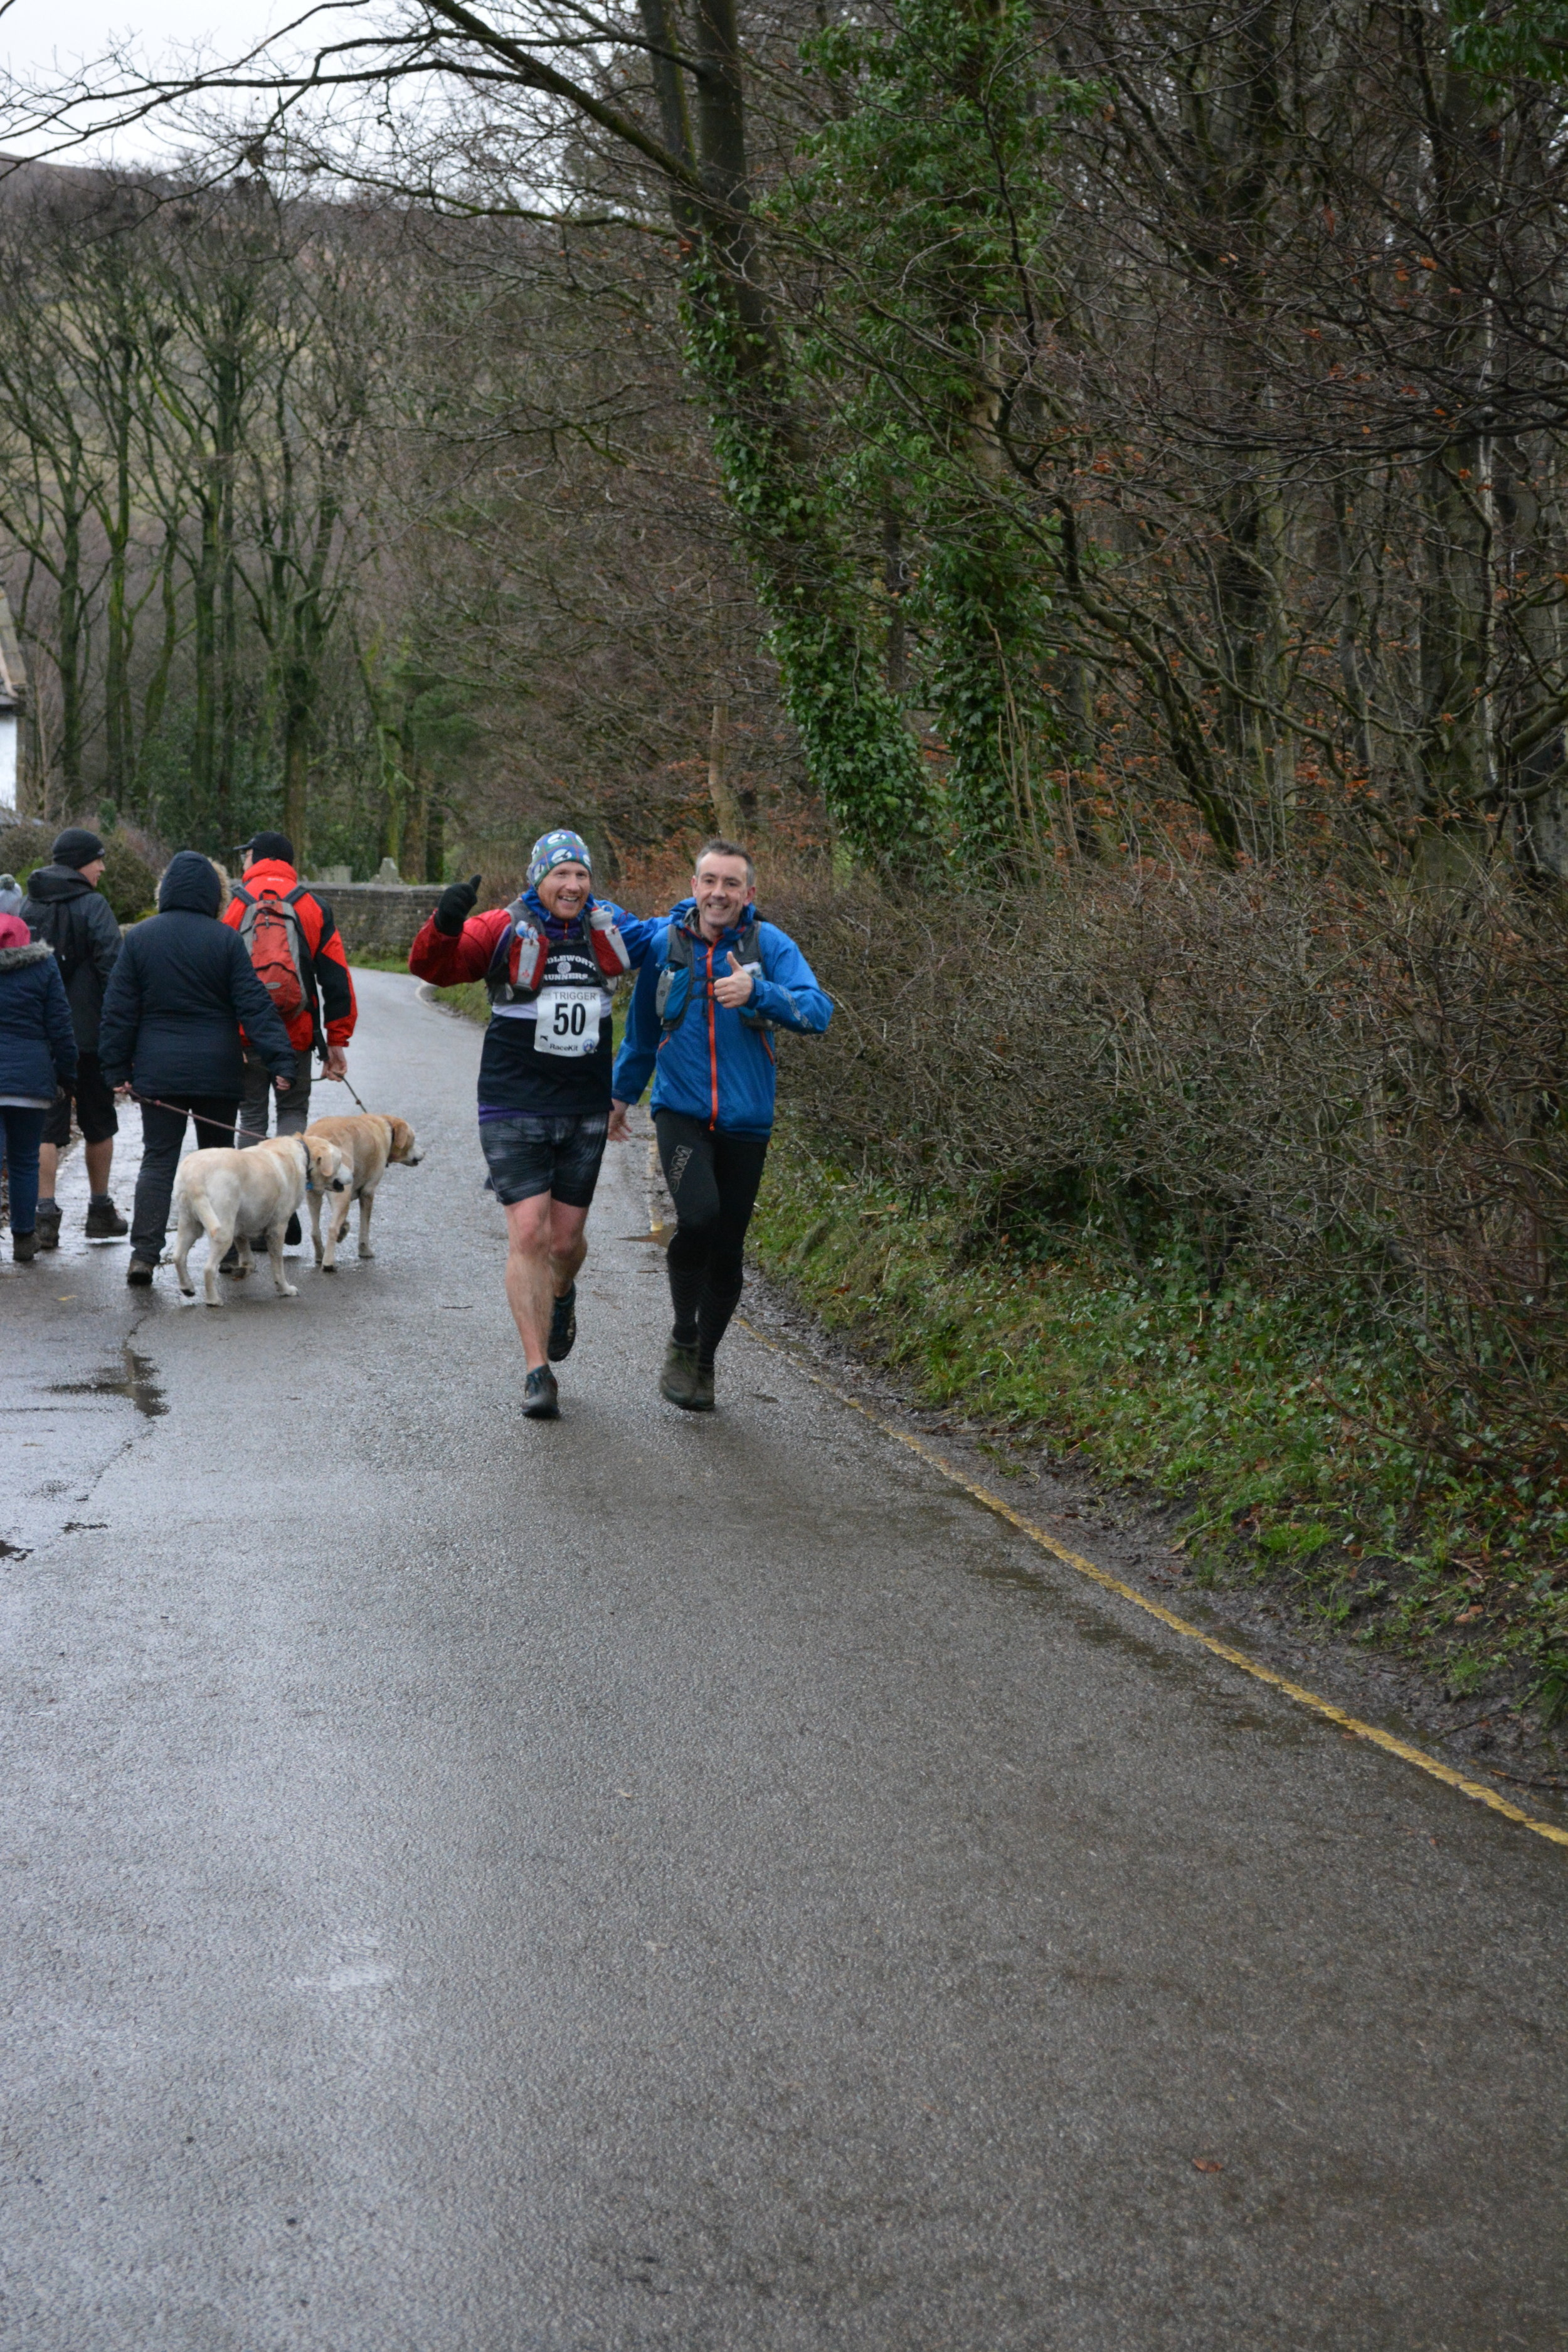 Trigger finish after 24.7 miles in Edale